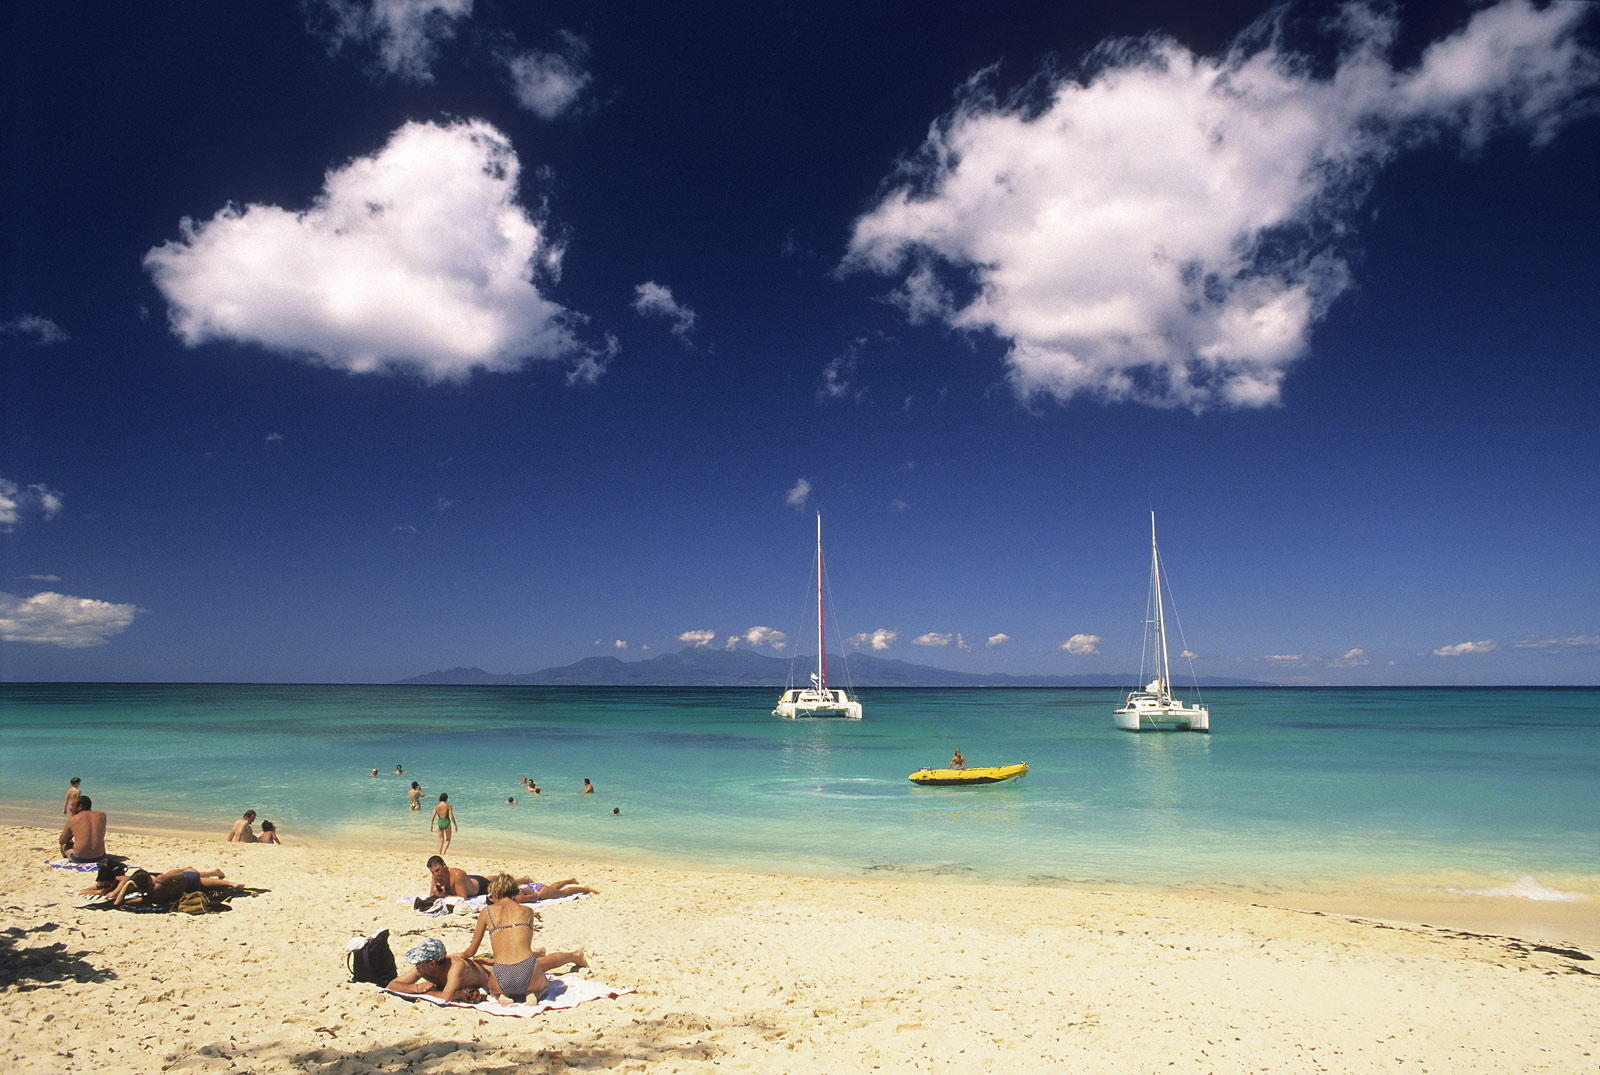 http://www.deshotelsetdesiles.com/hotel-vol-guadeloupe/photos/plage-de-marie-galante-guad.jpg